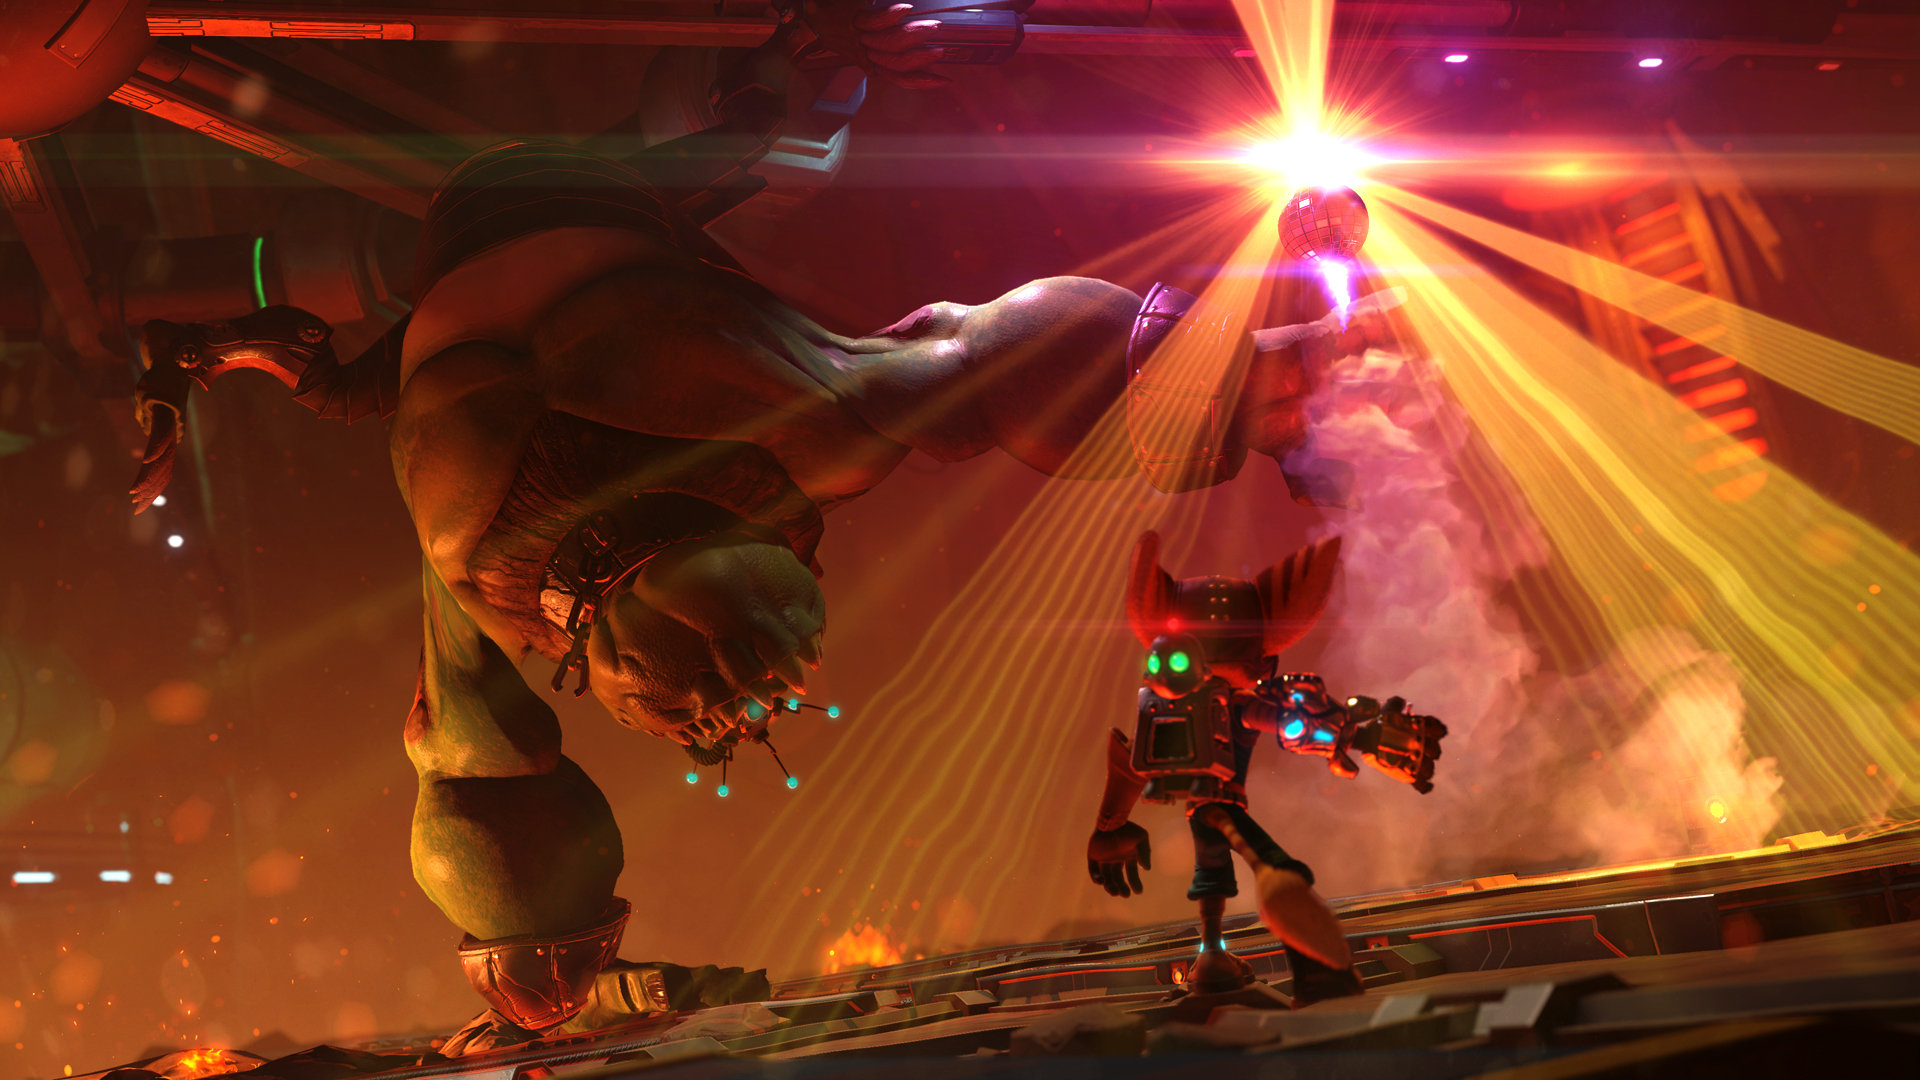 Análise do Ratchet & Clank